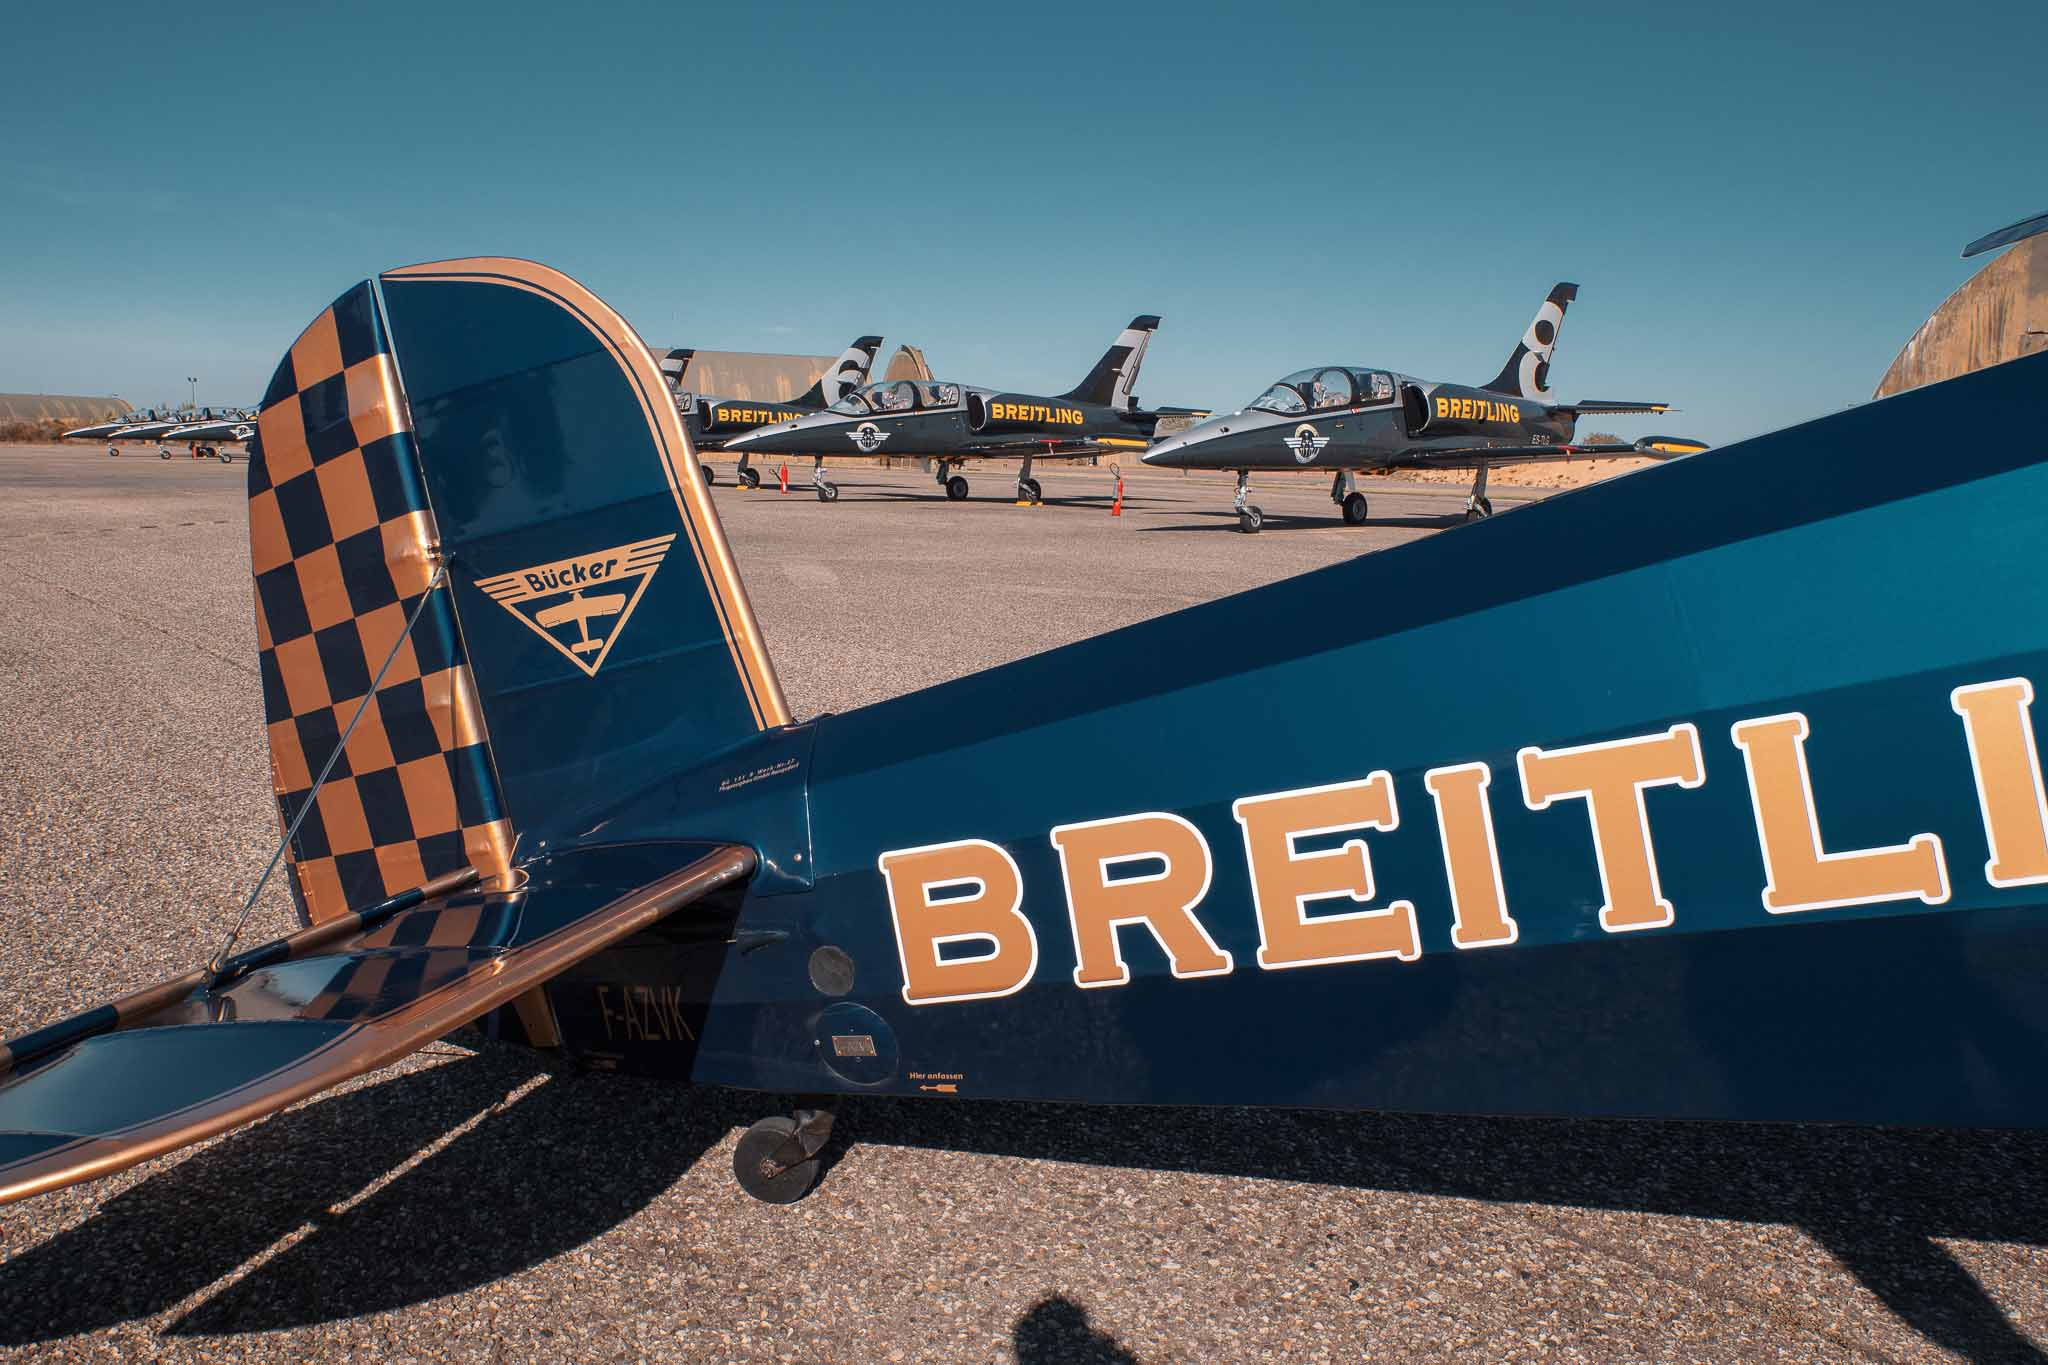 Breitling takes flying to the next level |